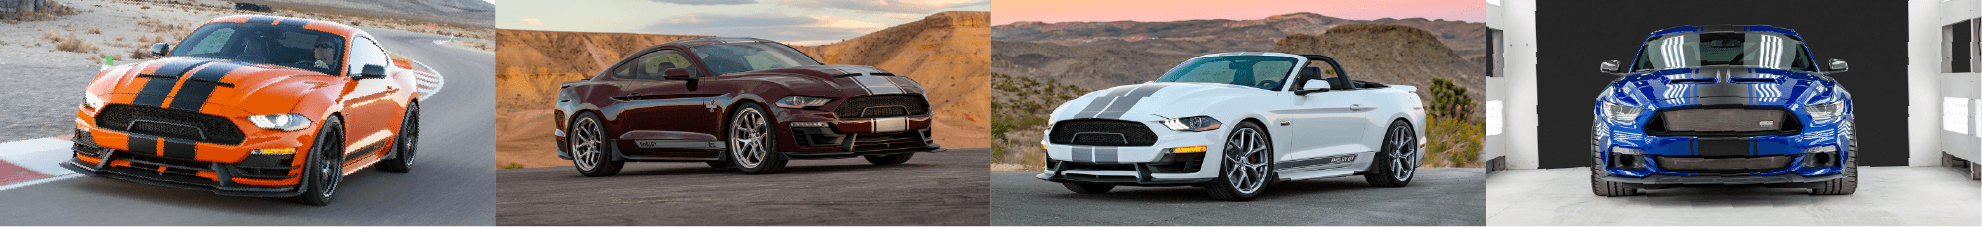 Bayfield Ford Shelby Vehicle Lineup